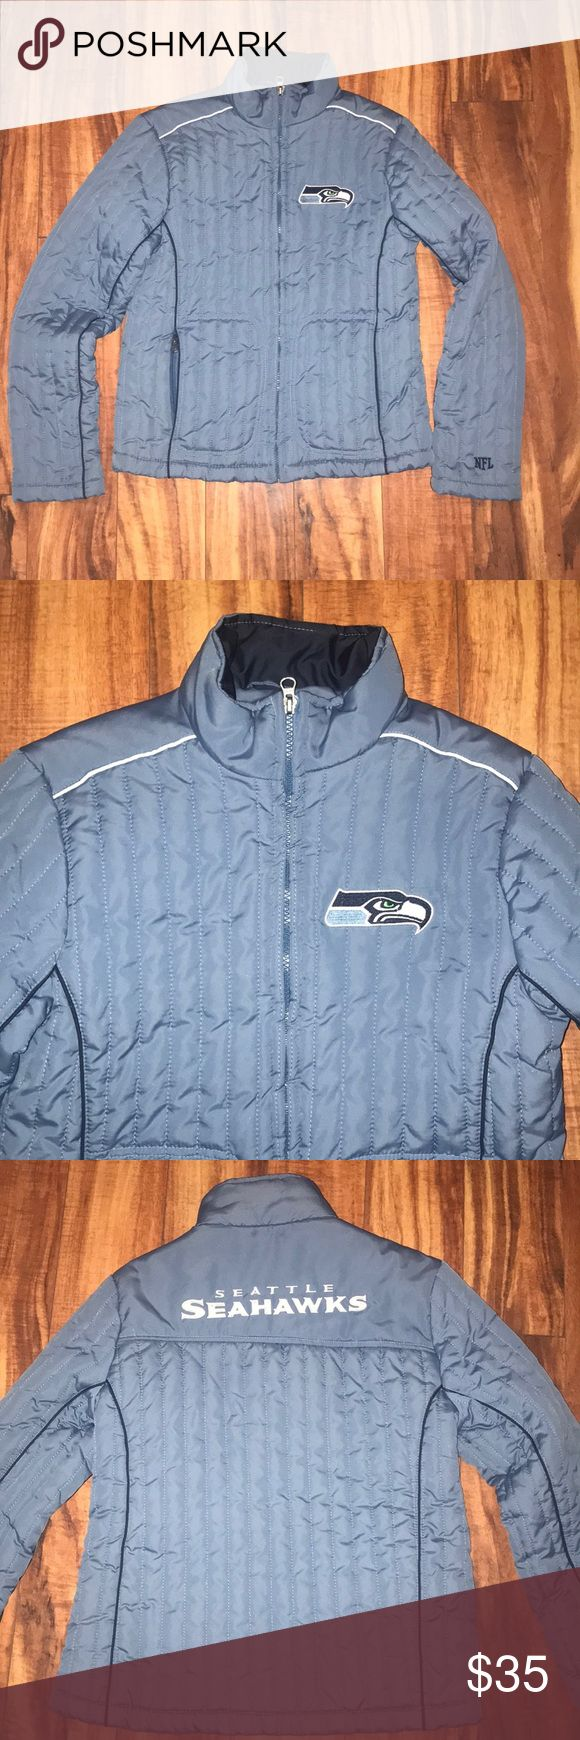 NFL Seattle Seahawks women's jacket puffer coat S NFL Team apparel  Size Small Seattle Seahawks Puffer coat she feels like down, but is polyrster Great condition NFL Jackets & Coats Puffers